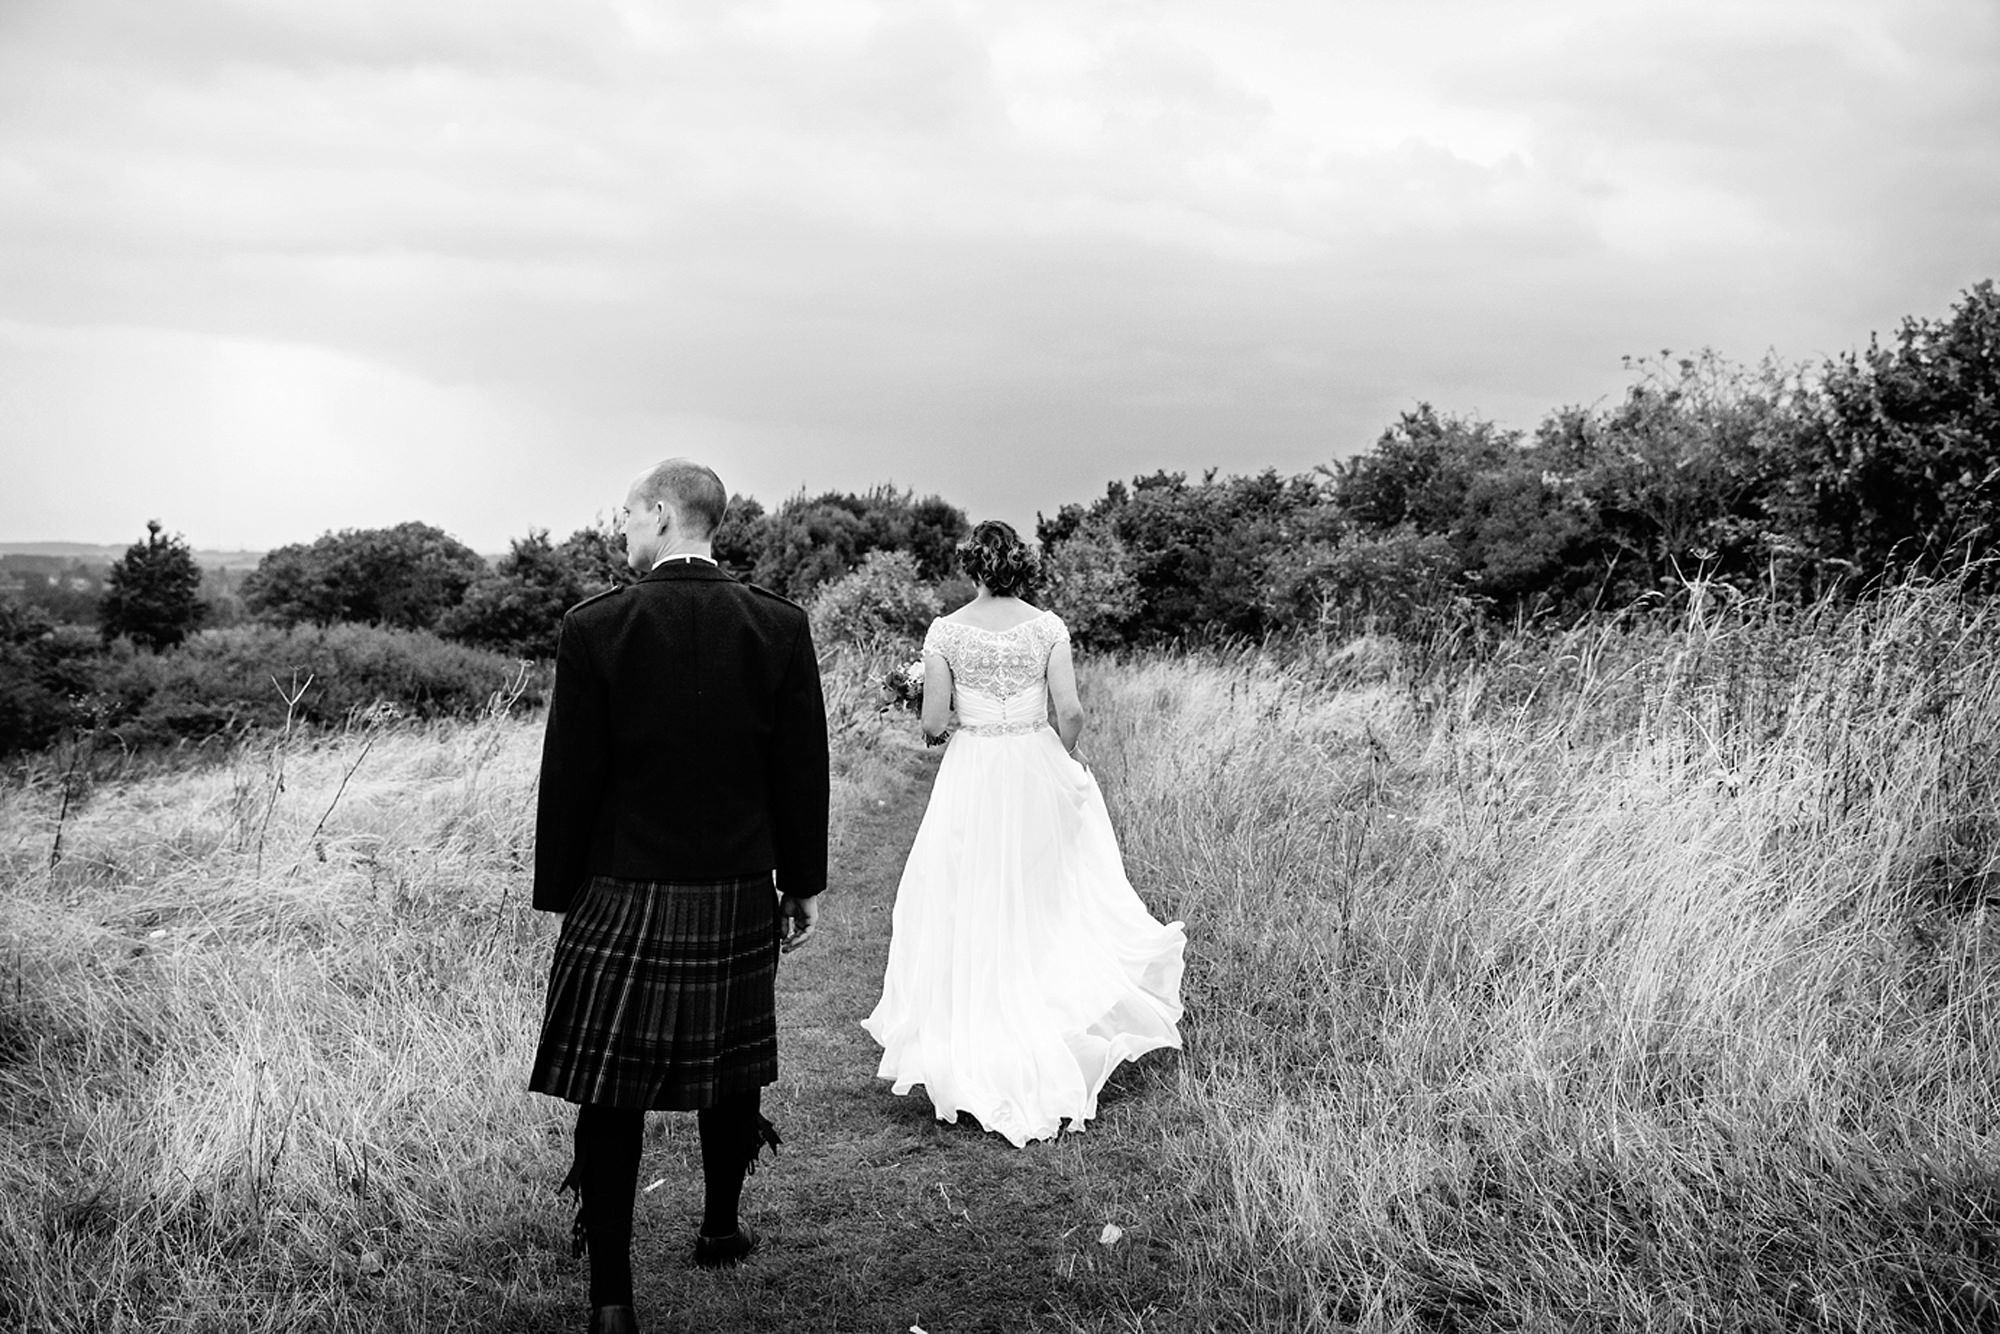 outdoor humanist wedding photography bride and groom walking in fields